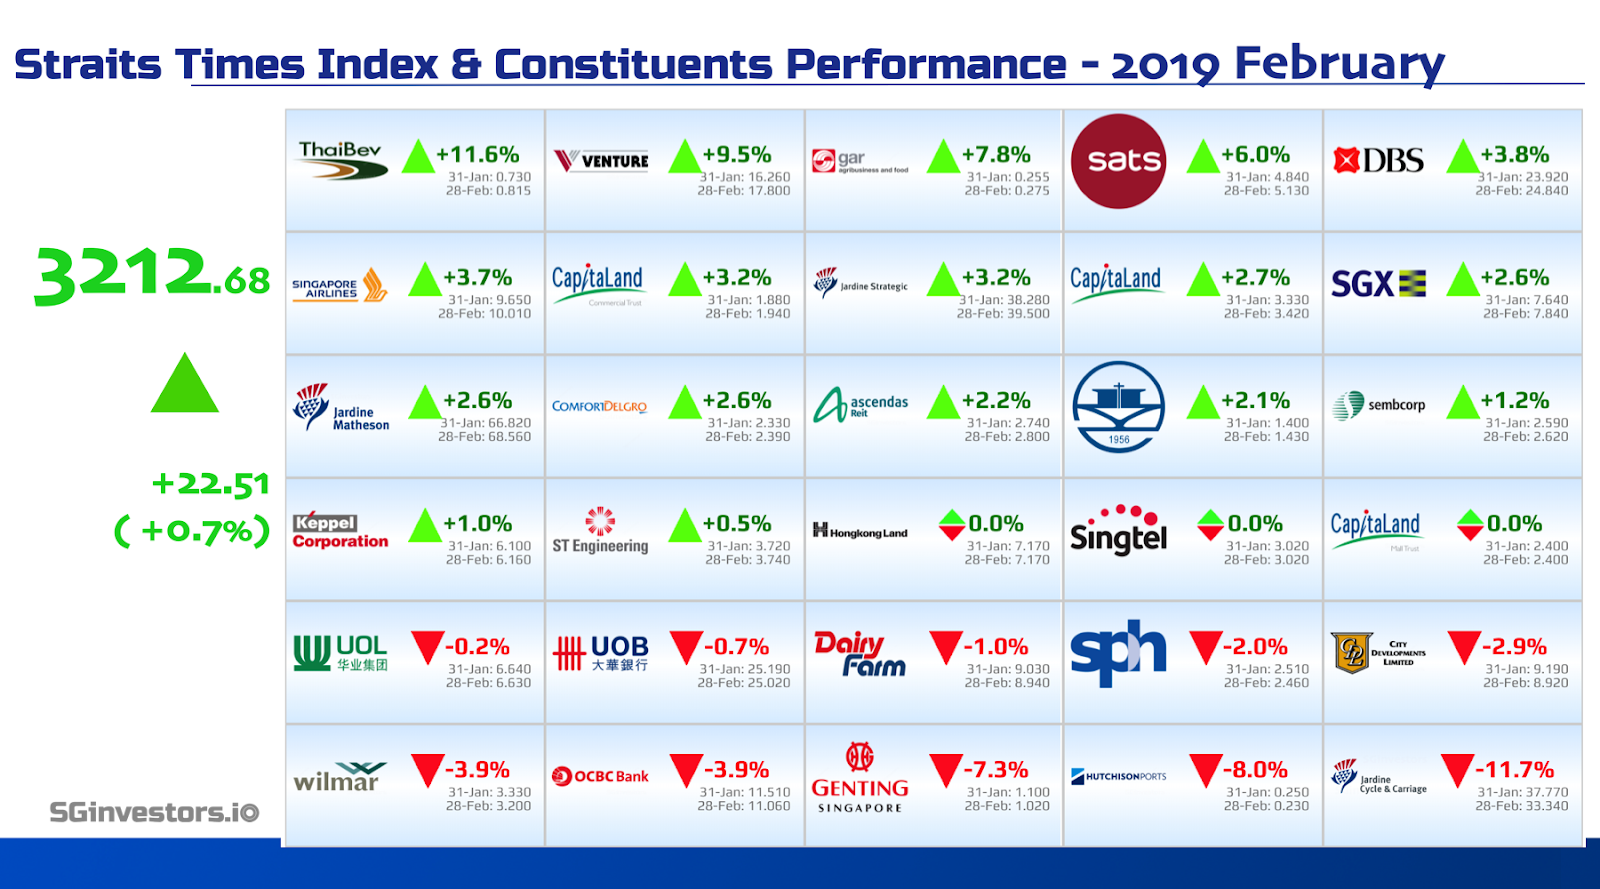 Performance of Straits Times Index (STI) Constituents in February 2019